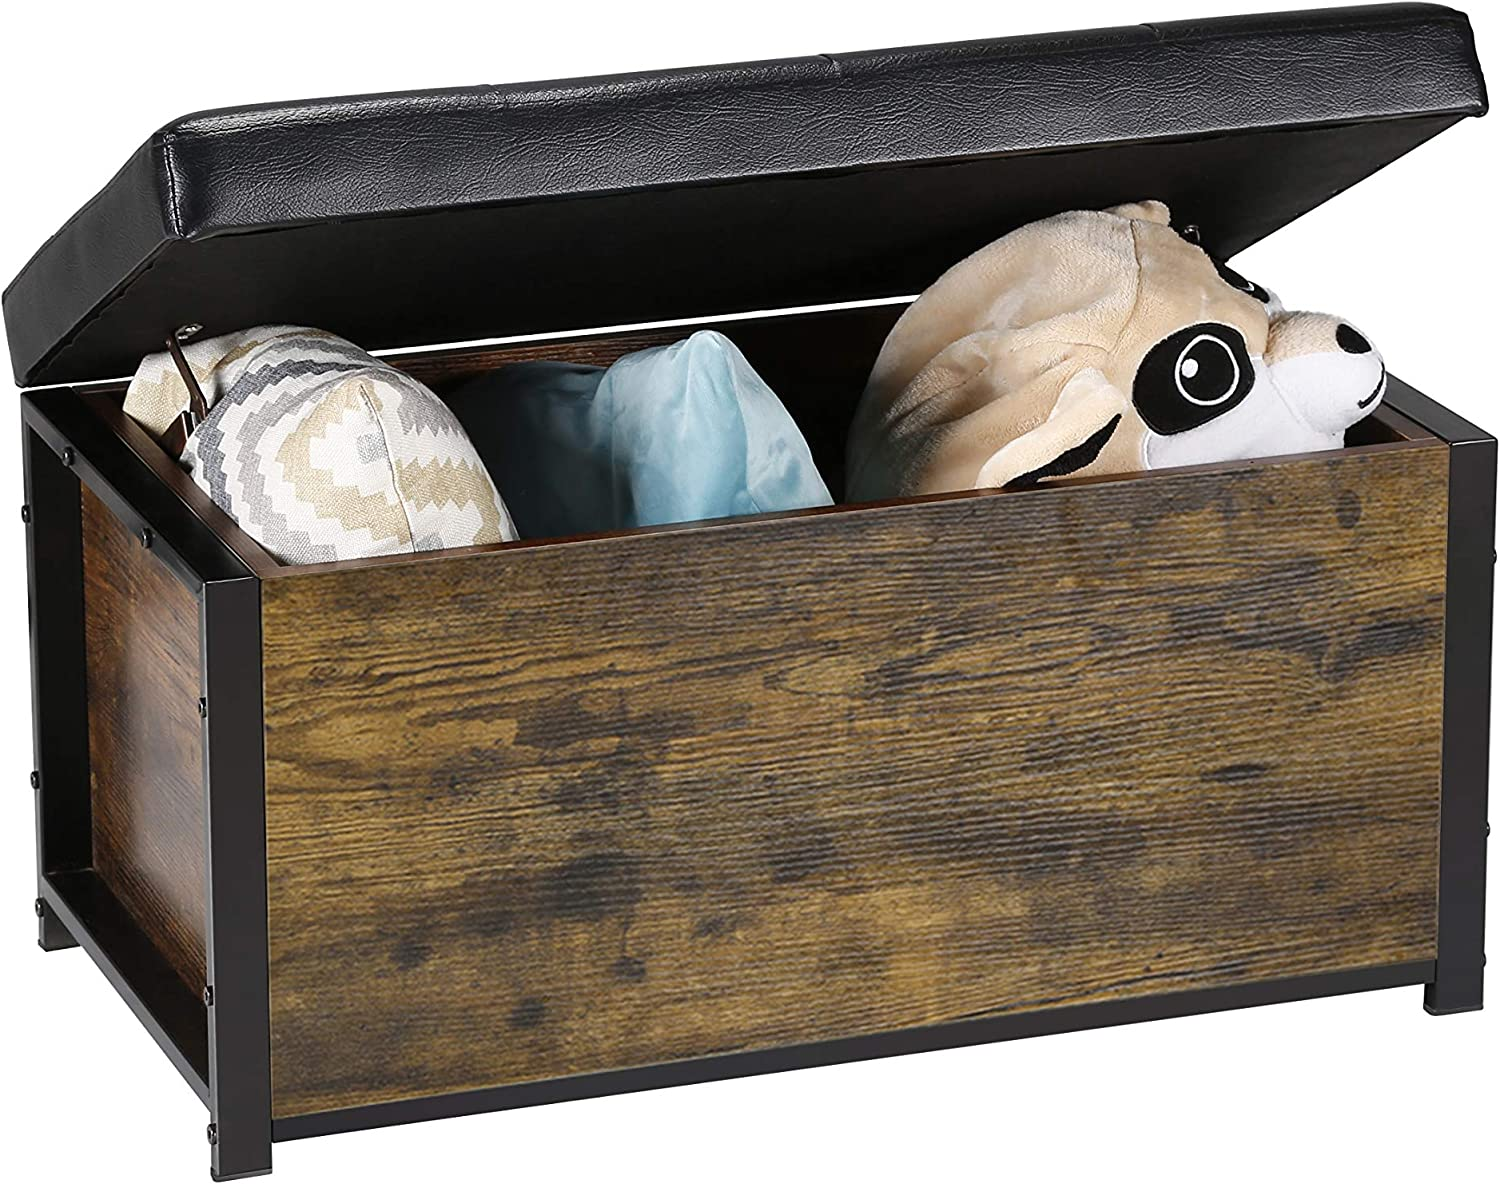 Kamiler Industrial Storage Ottoman Bench,Storage Chest with Faux Leather Padded Seat-Storage,Blanket Organizer for Bedroom,Living Room, Entryway,Hallway: Kitchen & Dining